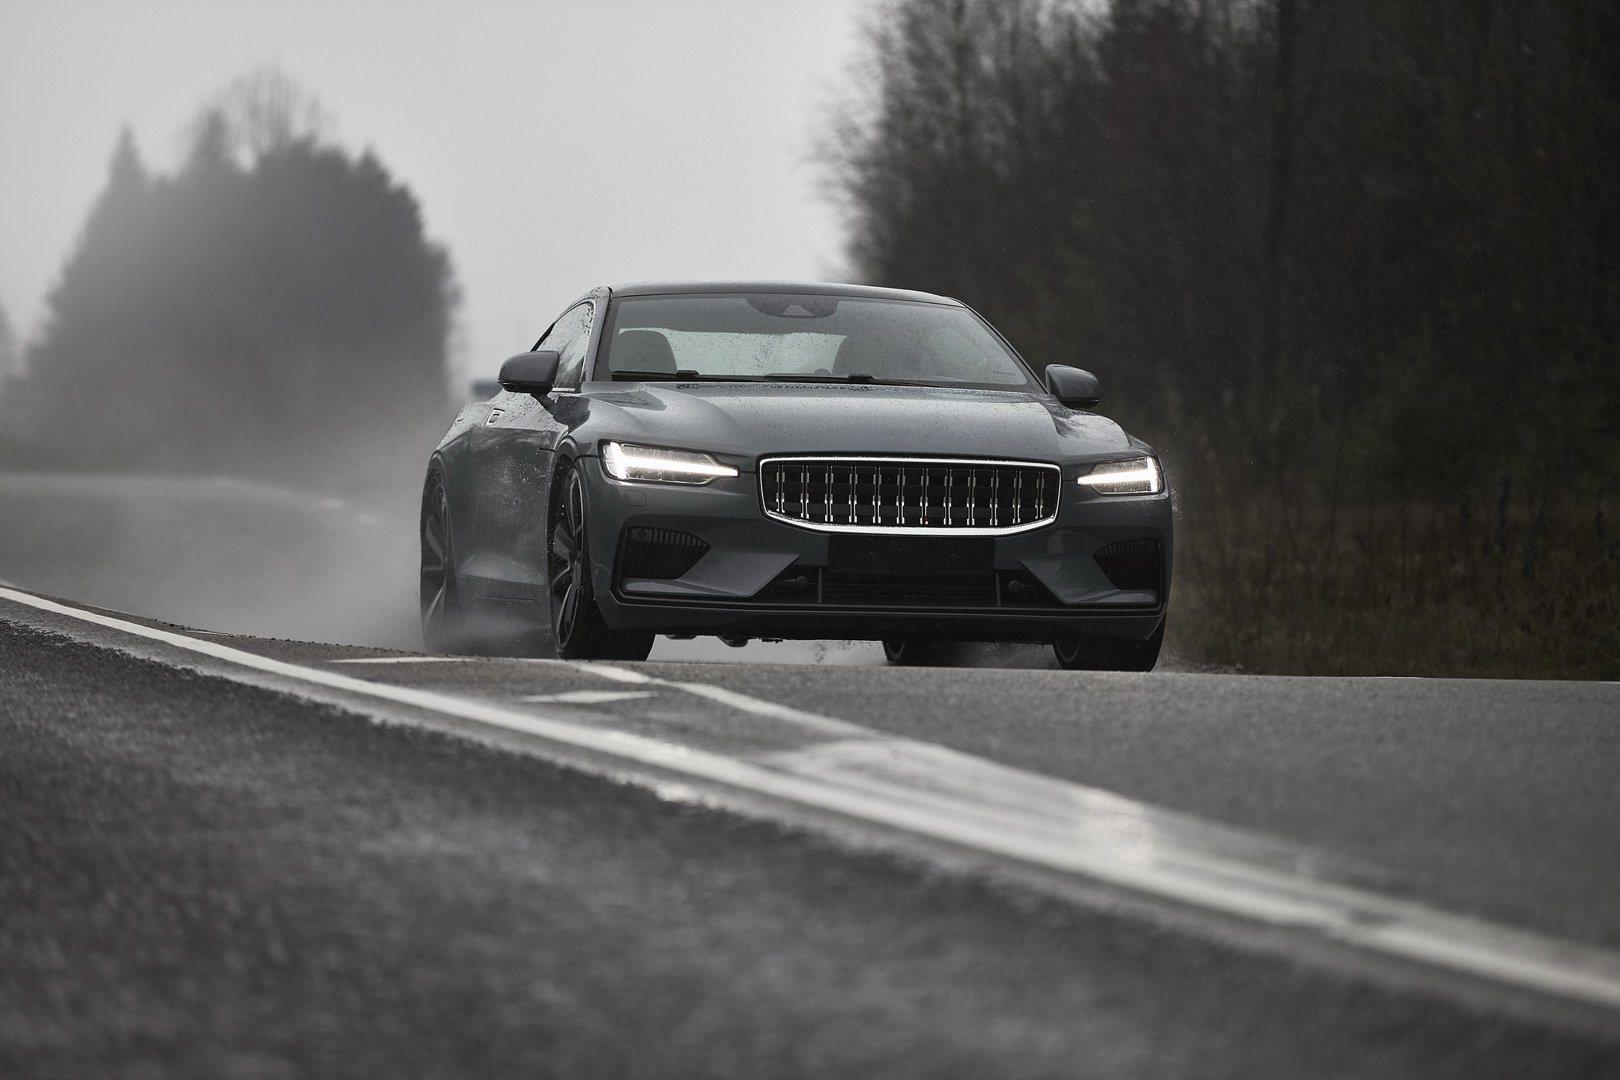 Car maker Polestar has released test footage of the Polestar 1, the development mule of its first-ever hybrid coupe